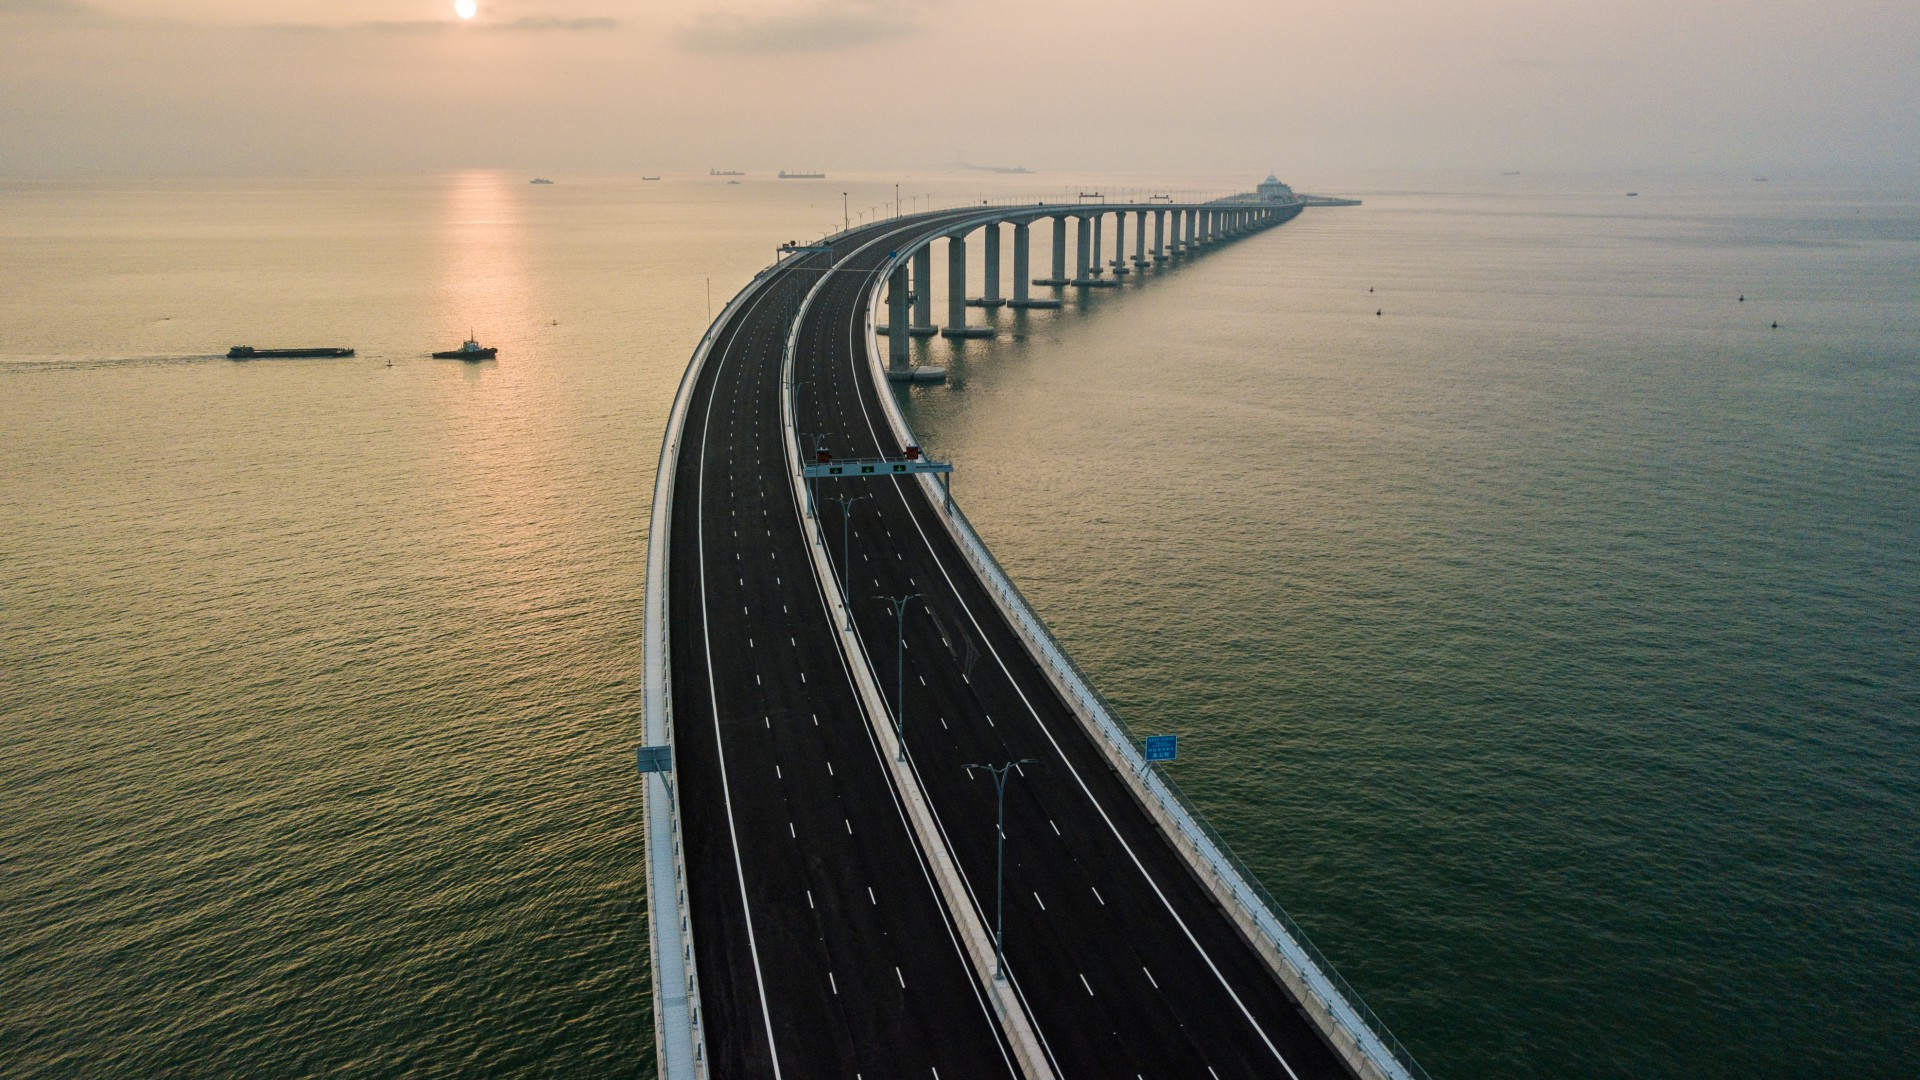 Girls In Burma S Wallpapers Wallpaper Hong Kong Zhuhai Macau Bridge China 4k Travel